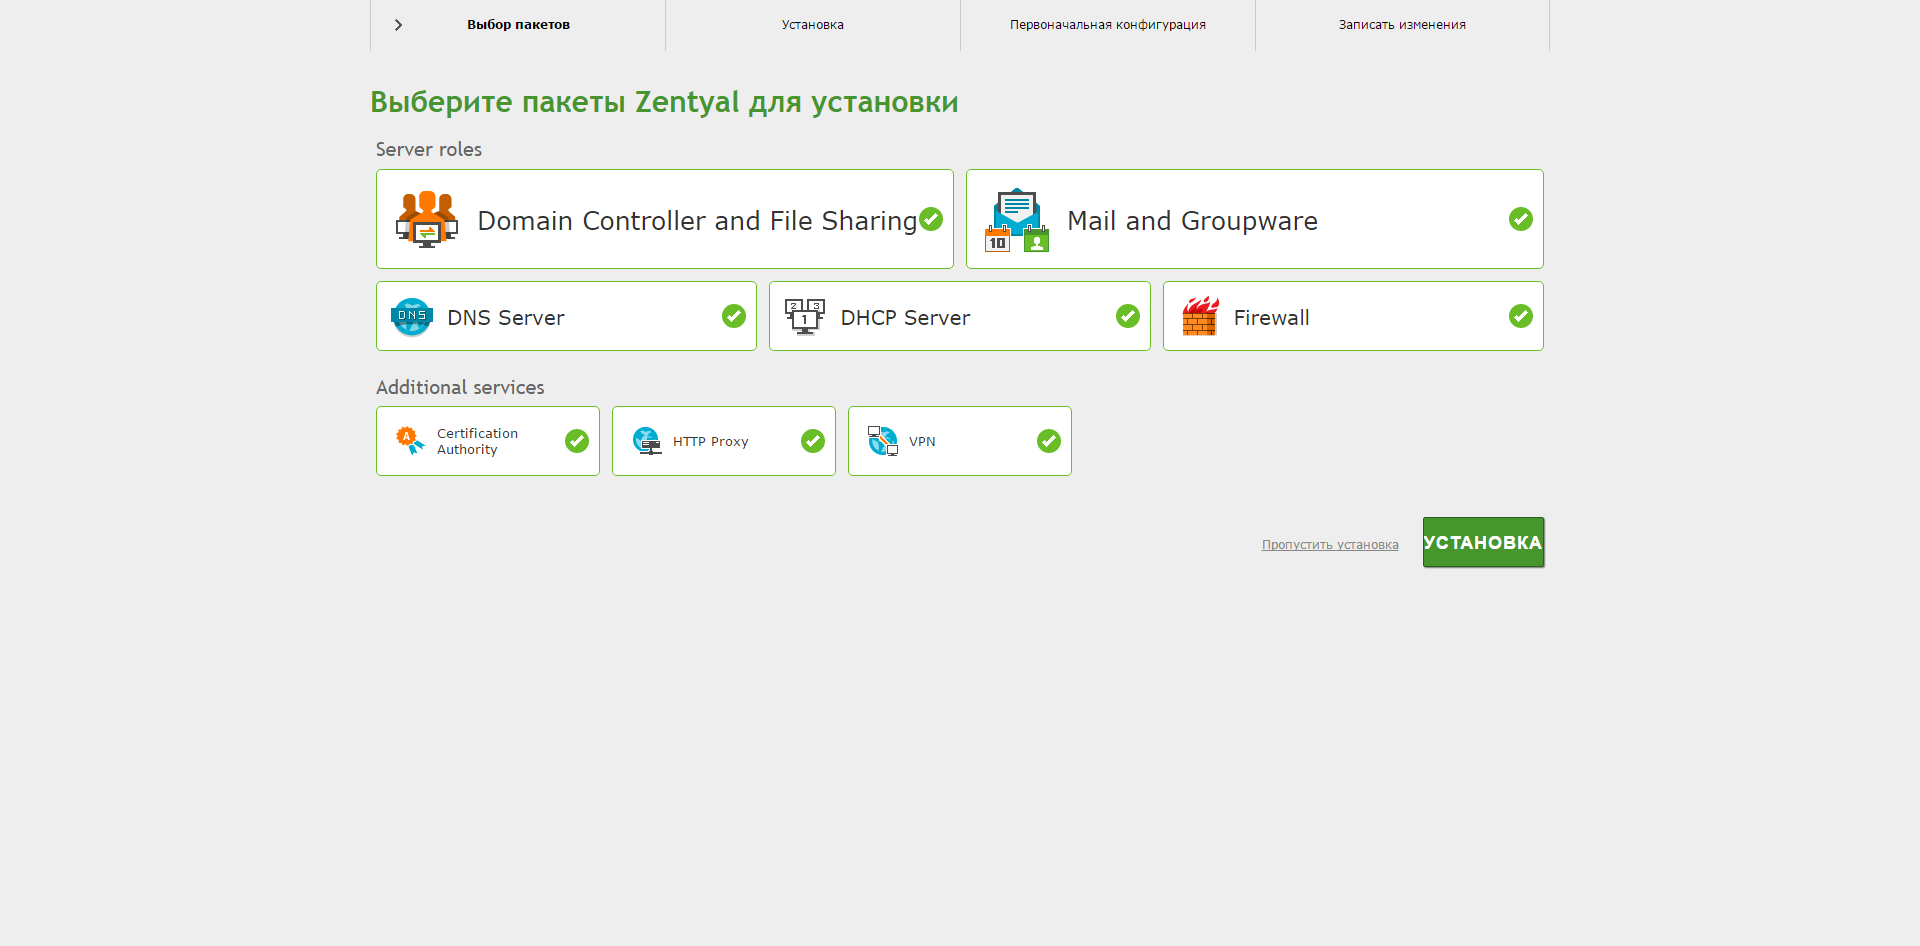 When you select a module or group of modules for installation, zentyal will show you a list of additional dependency